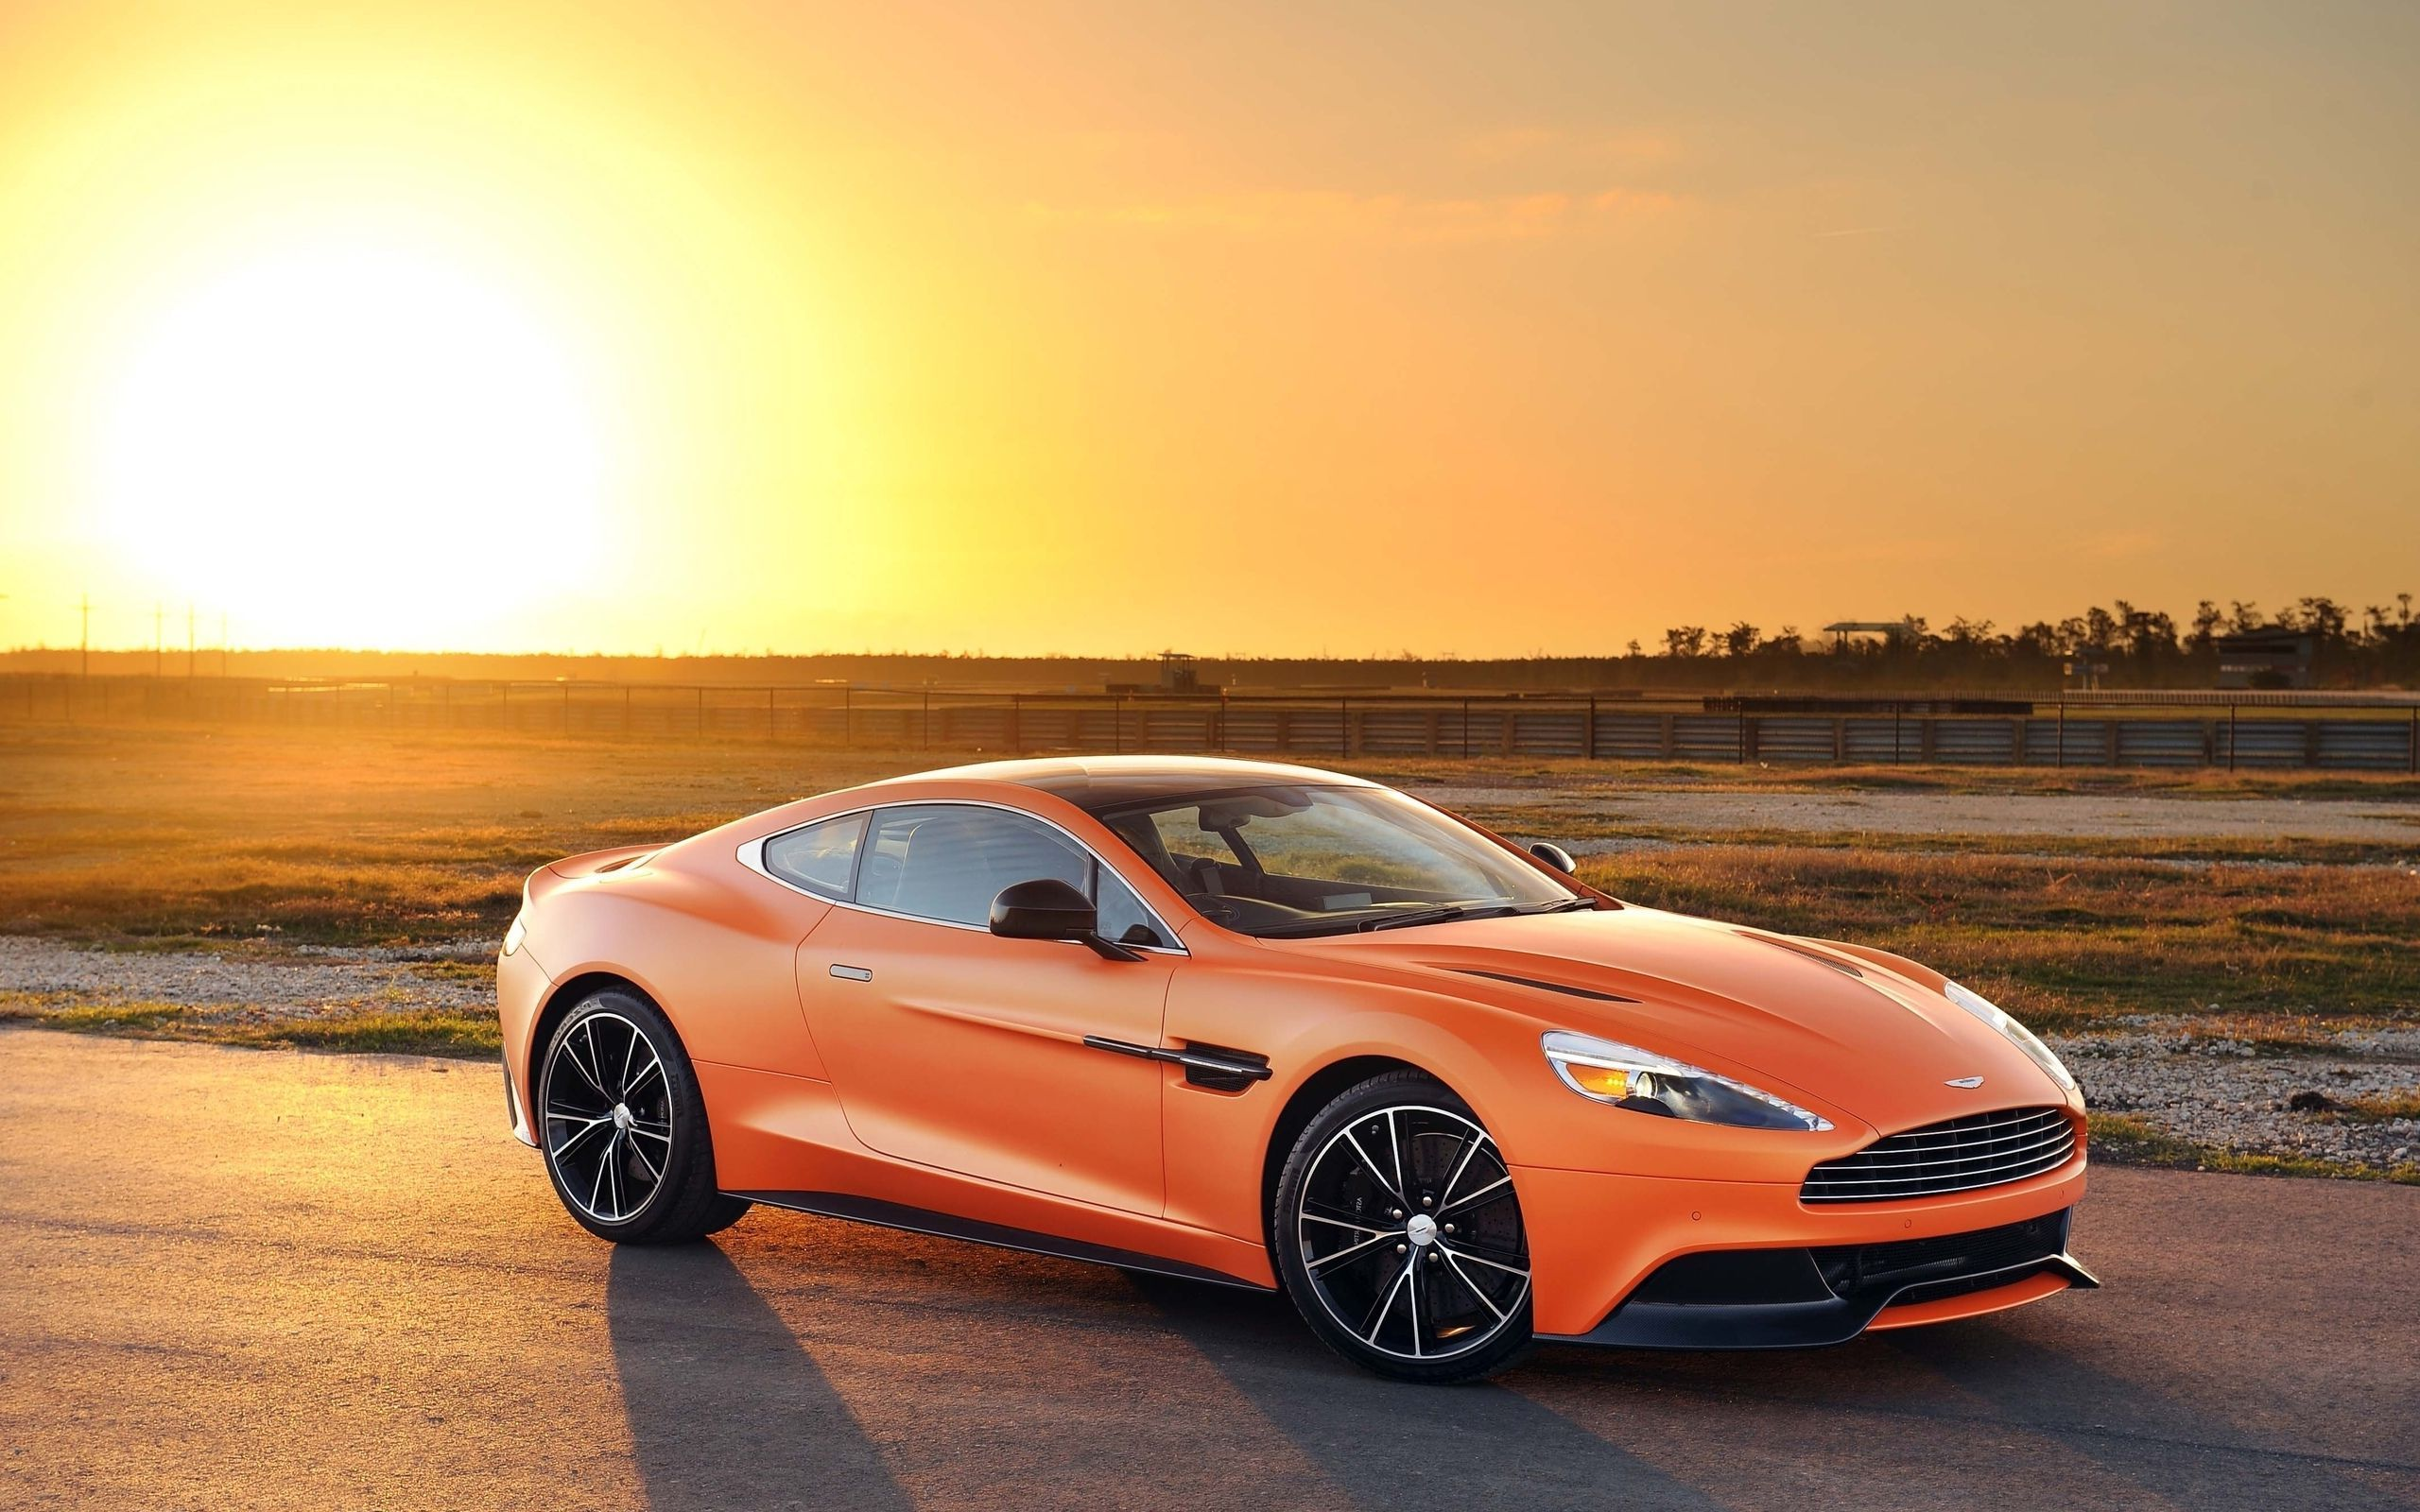 Aston Martin Vanquish Wallpaper Widescreen Ukh